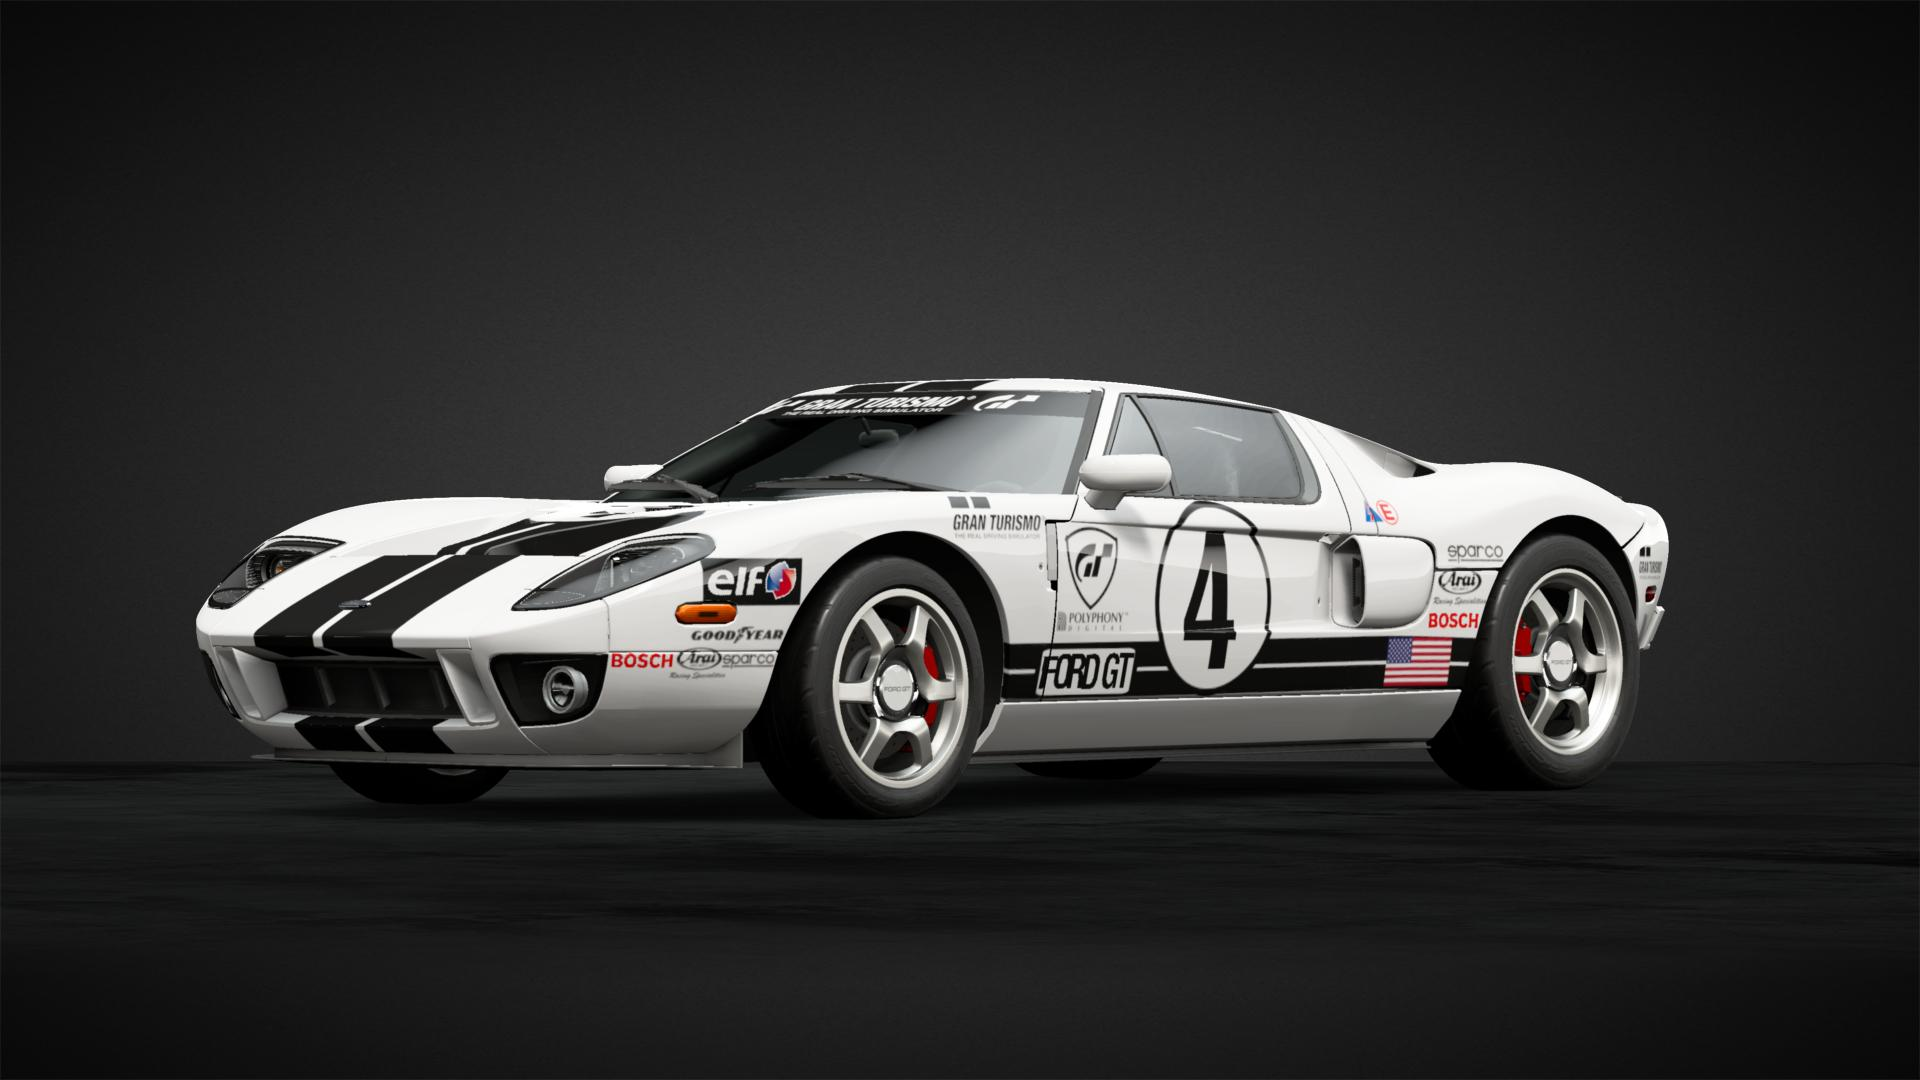 Ford Gt Lm Race Car Spec Ii Car Livery By Rogholmespne Community Gran Turismo Sport